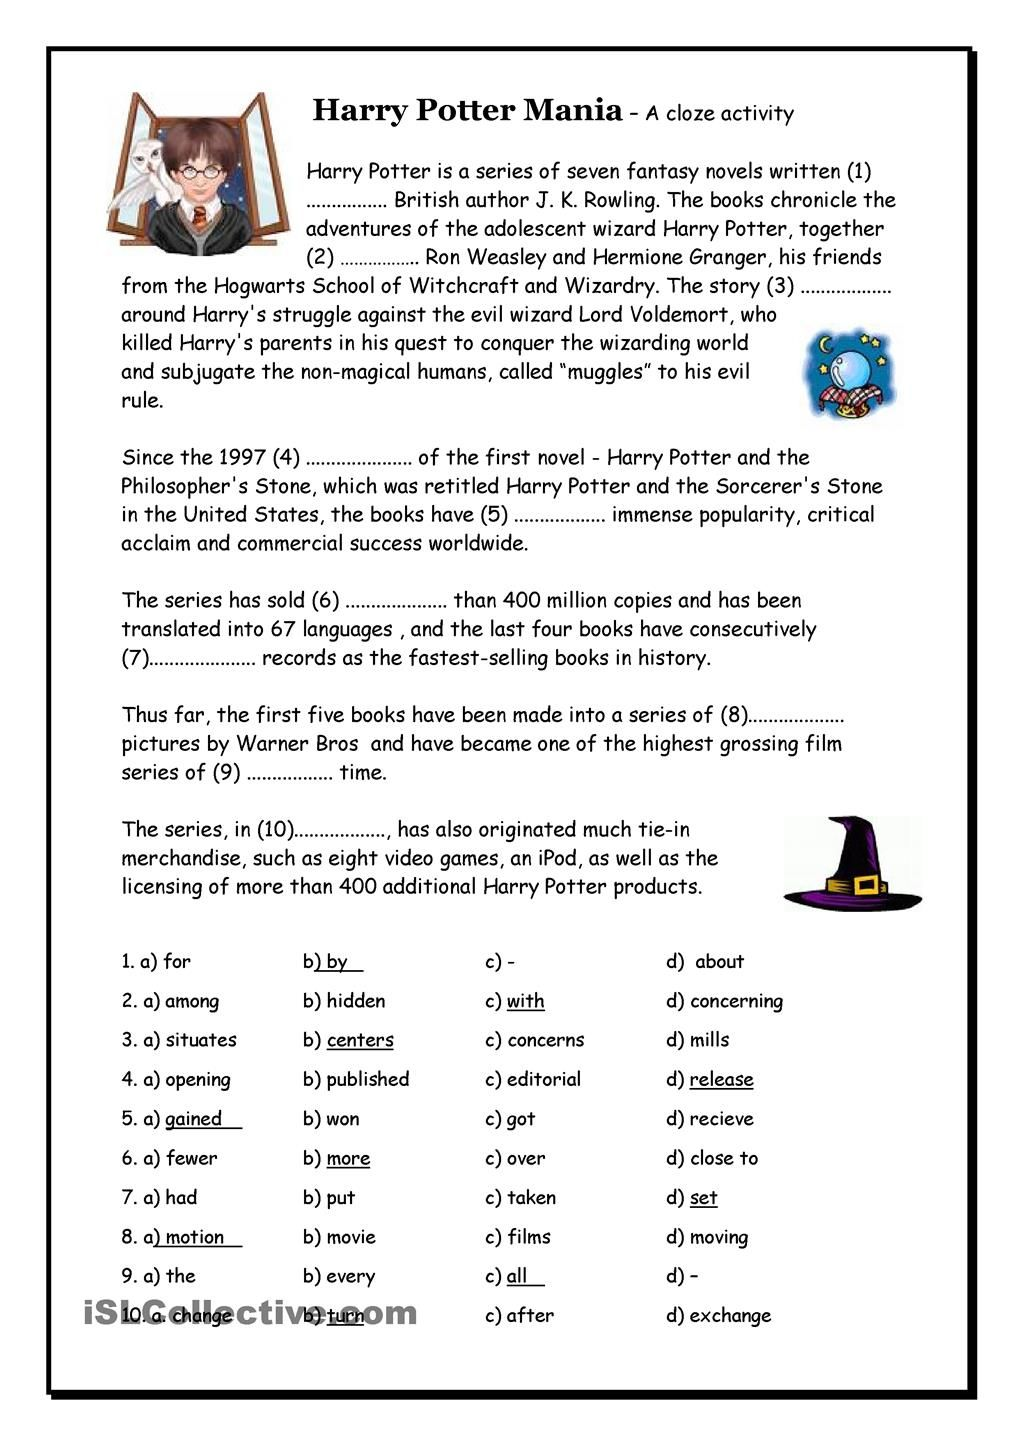 worksheet Harry Potter Worksheets harry potter mania cloze school literature fables fairy worksheet free esl printable worksheets made by teachers